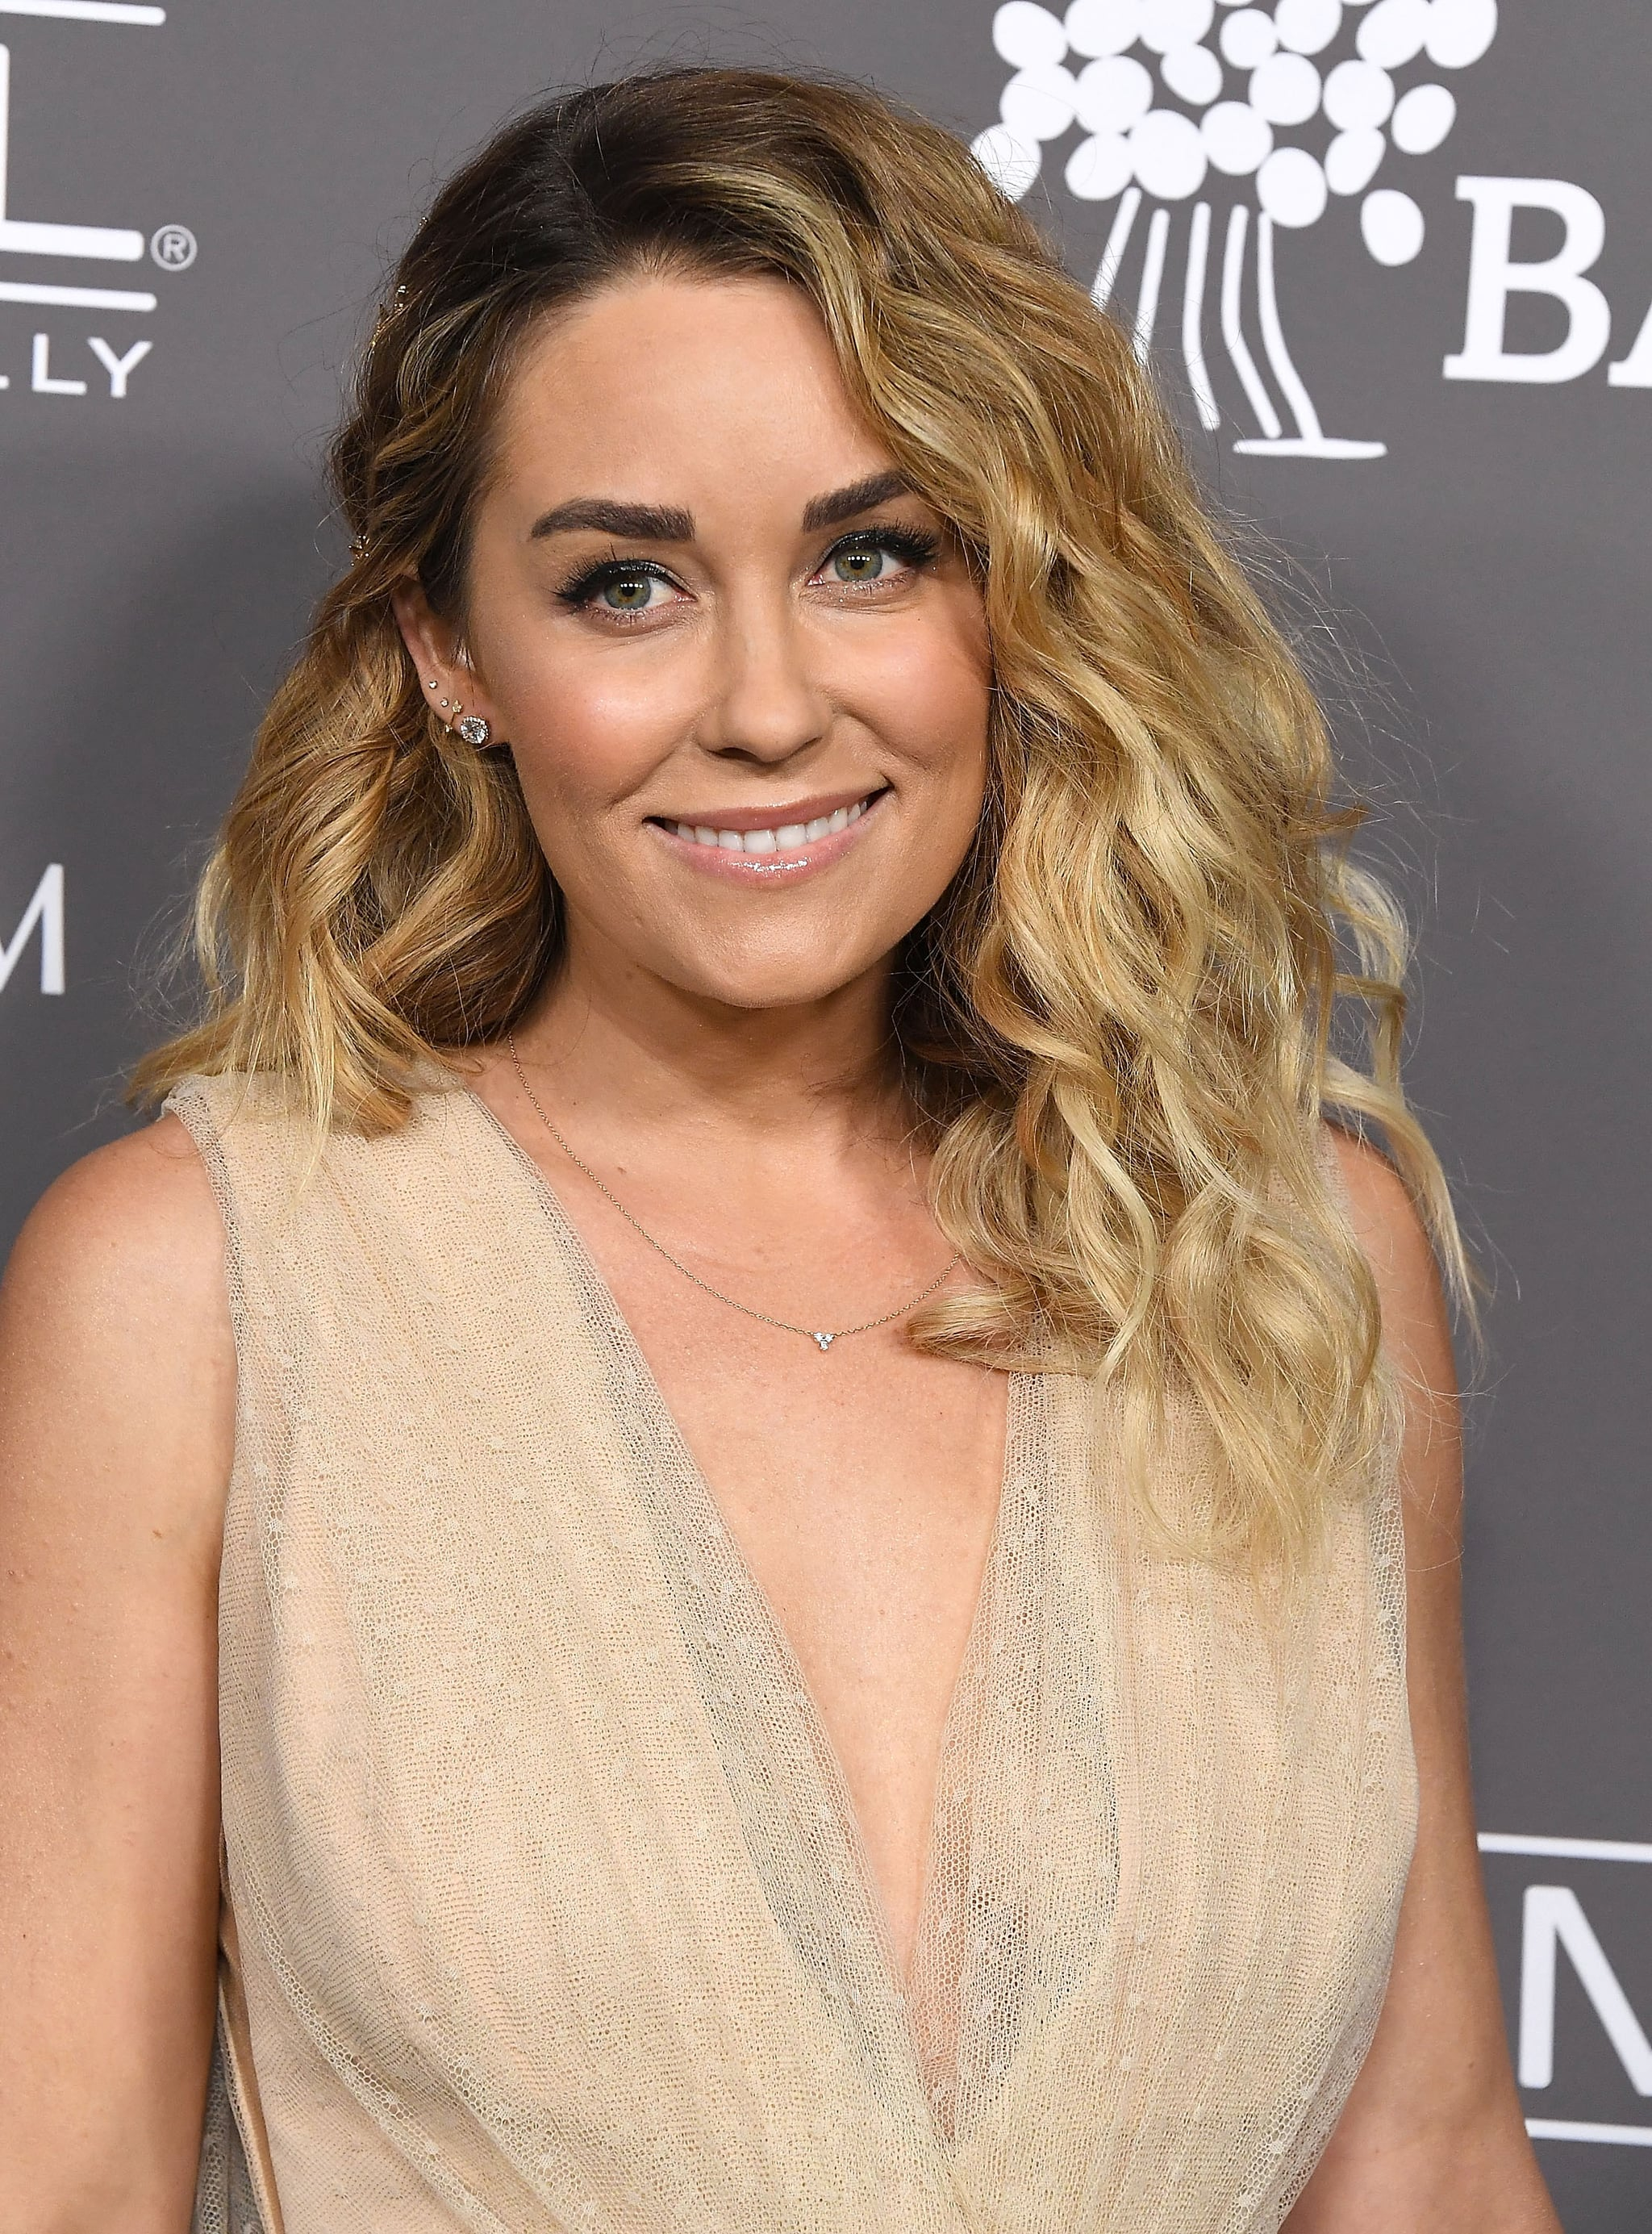 CULVER CITY, CA - NOVEMBER 10:  Lauren Conrad arrives at the The 2018 Baby2Baby Gala Presented By Paul Mitchell Event  at 3LABS on November 10, 2018 in Culver City, California.  (Photo by Steve Granitz/WireImage)